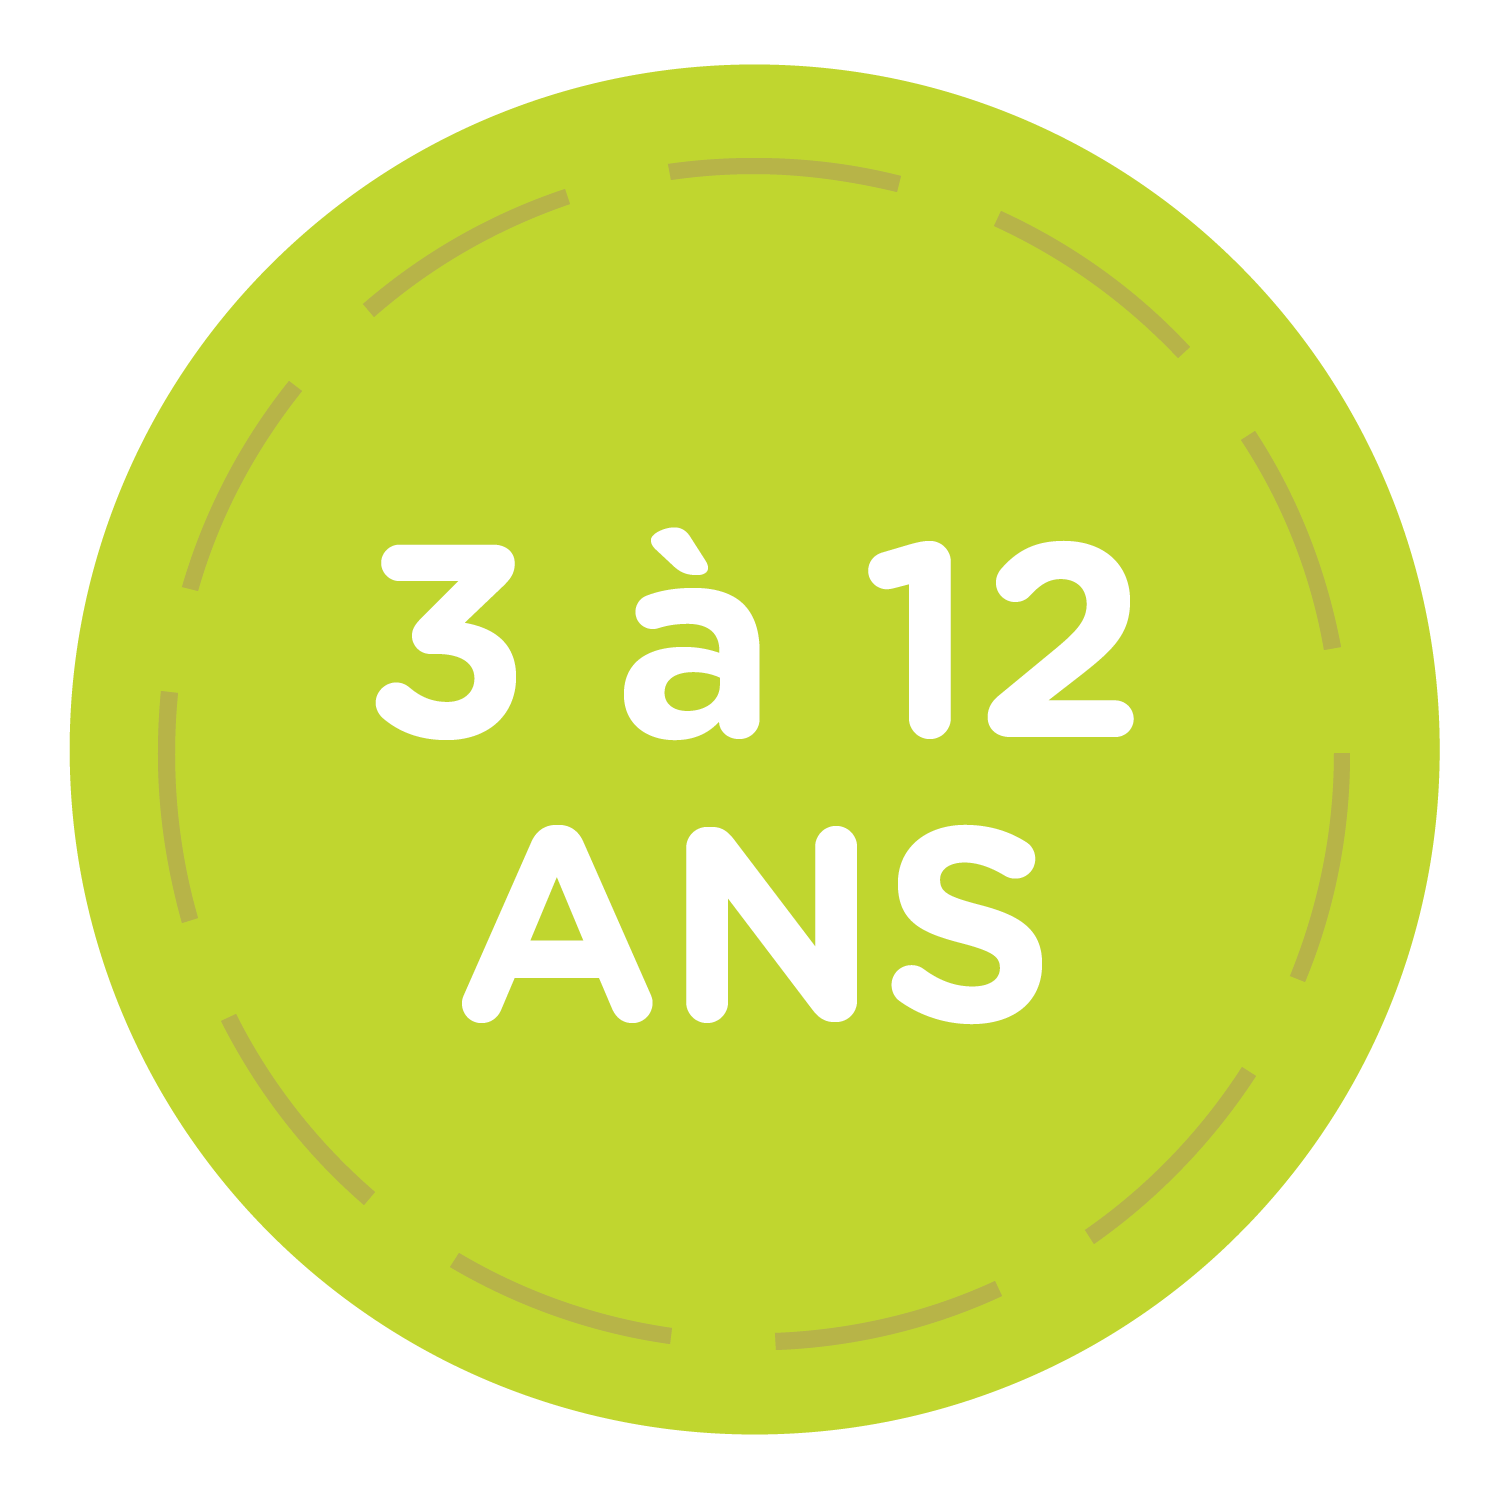 Age-Group-Circles-With-Text_Camps_3-12yrs_French_copy